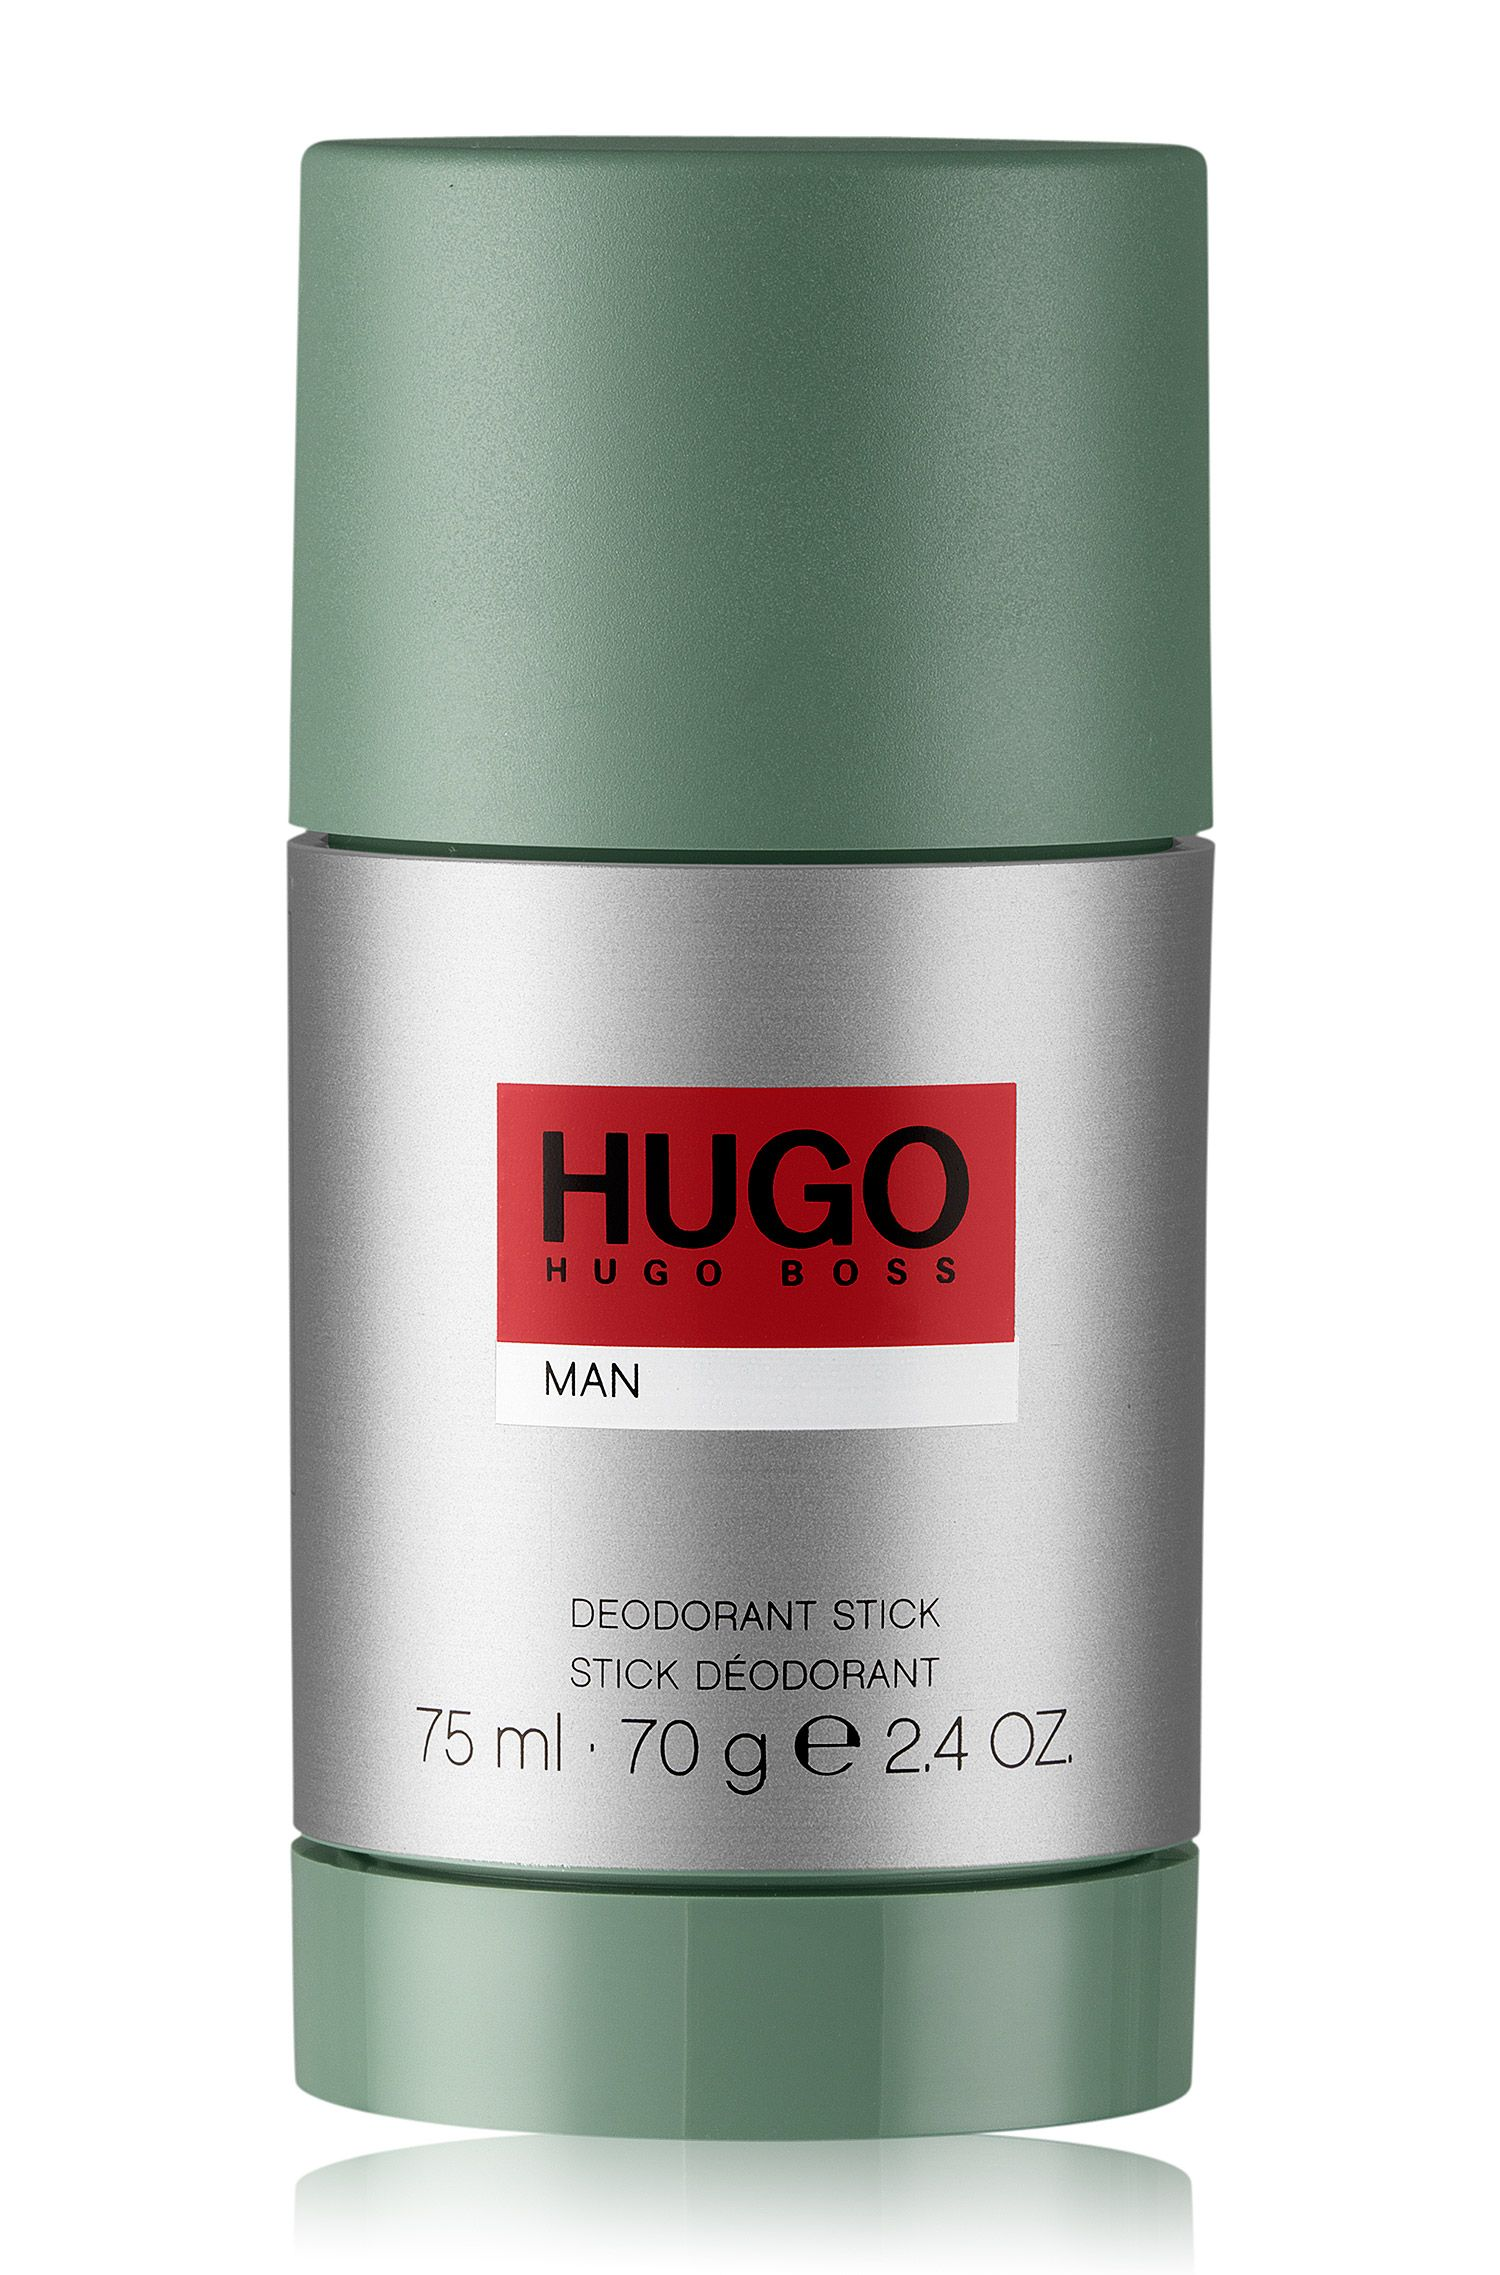 Déodorant Stick HUGO Man, 75 ml